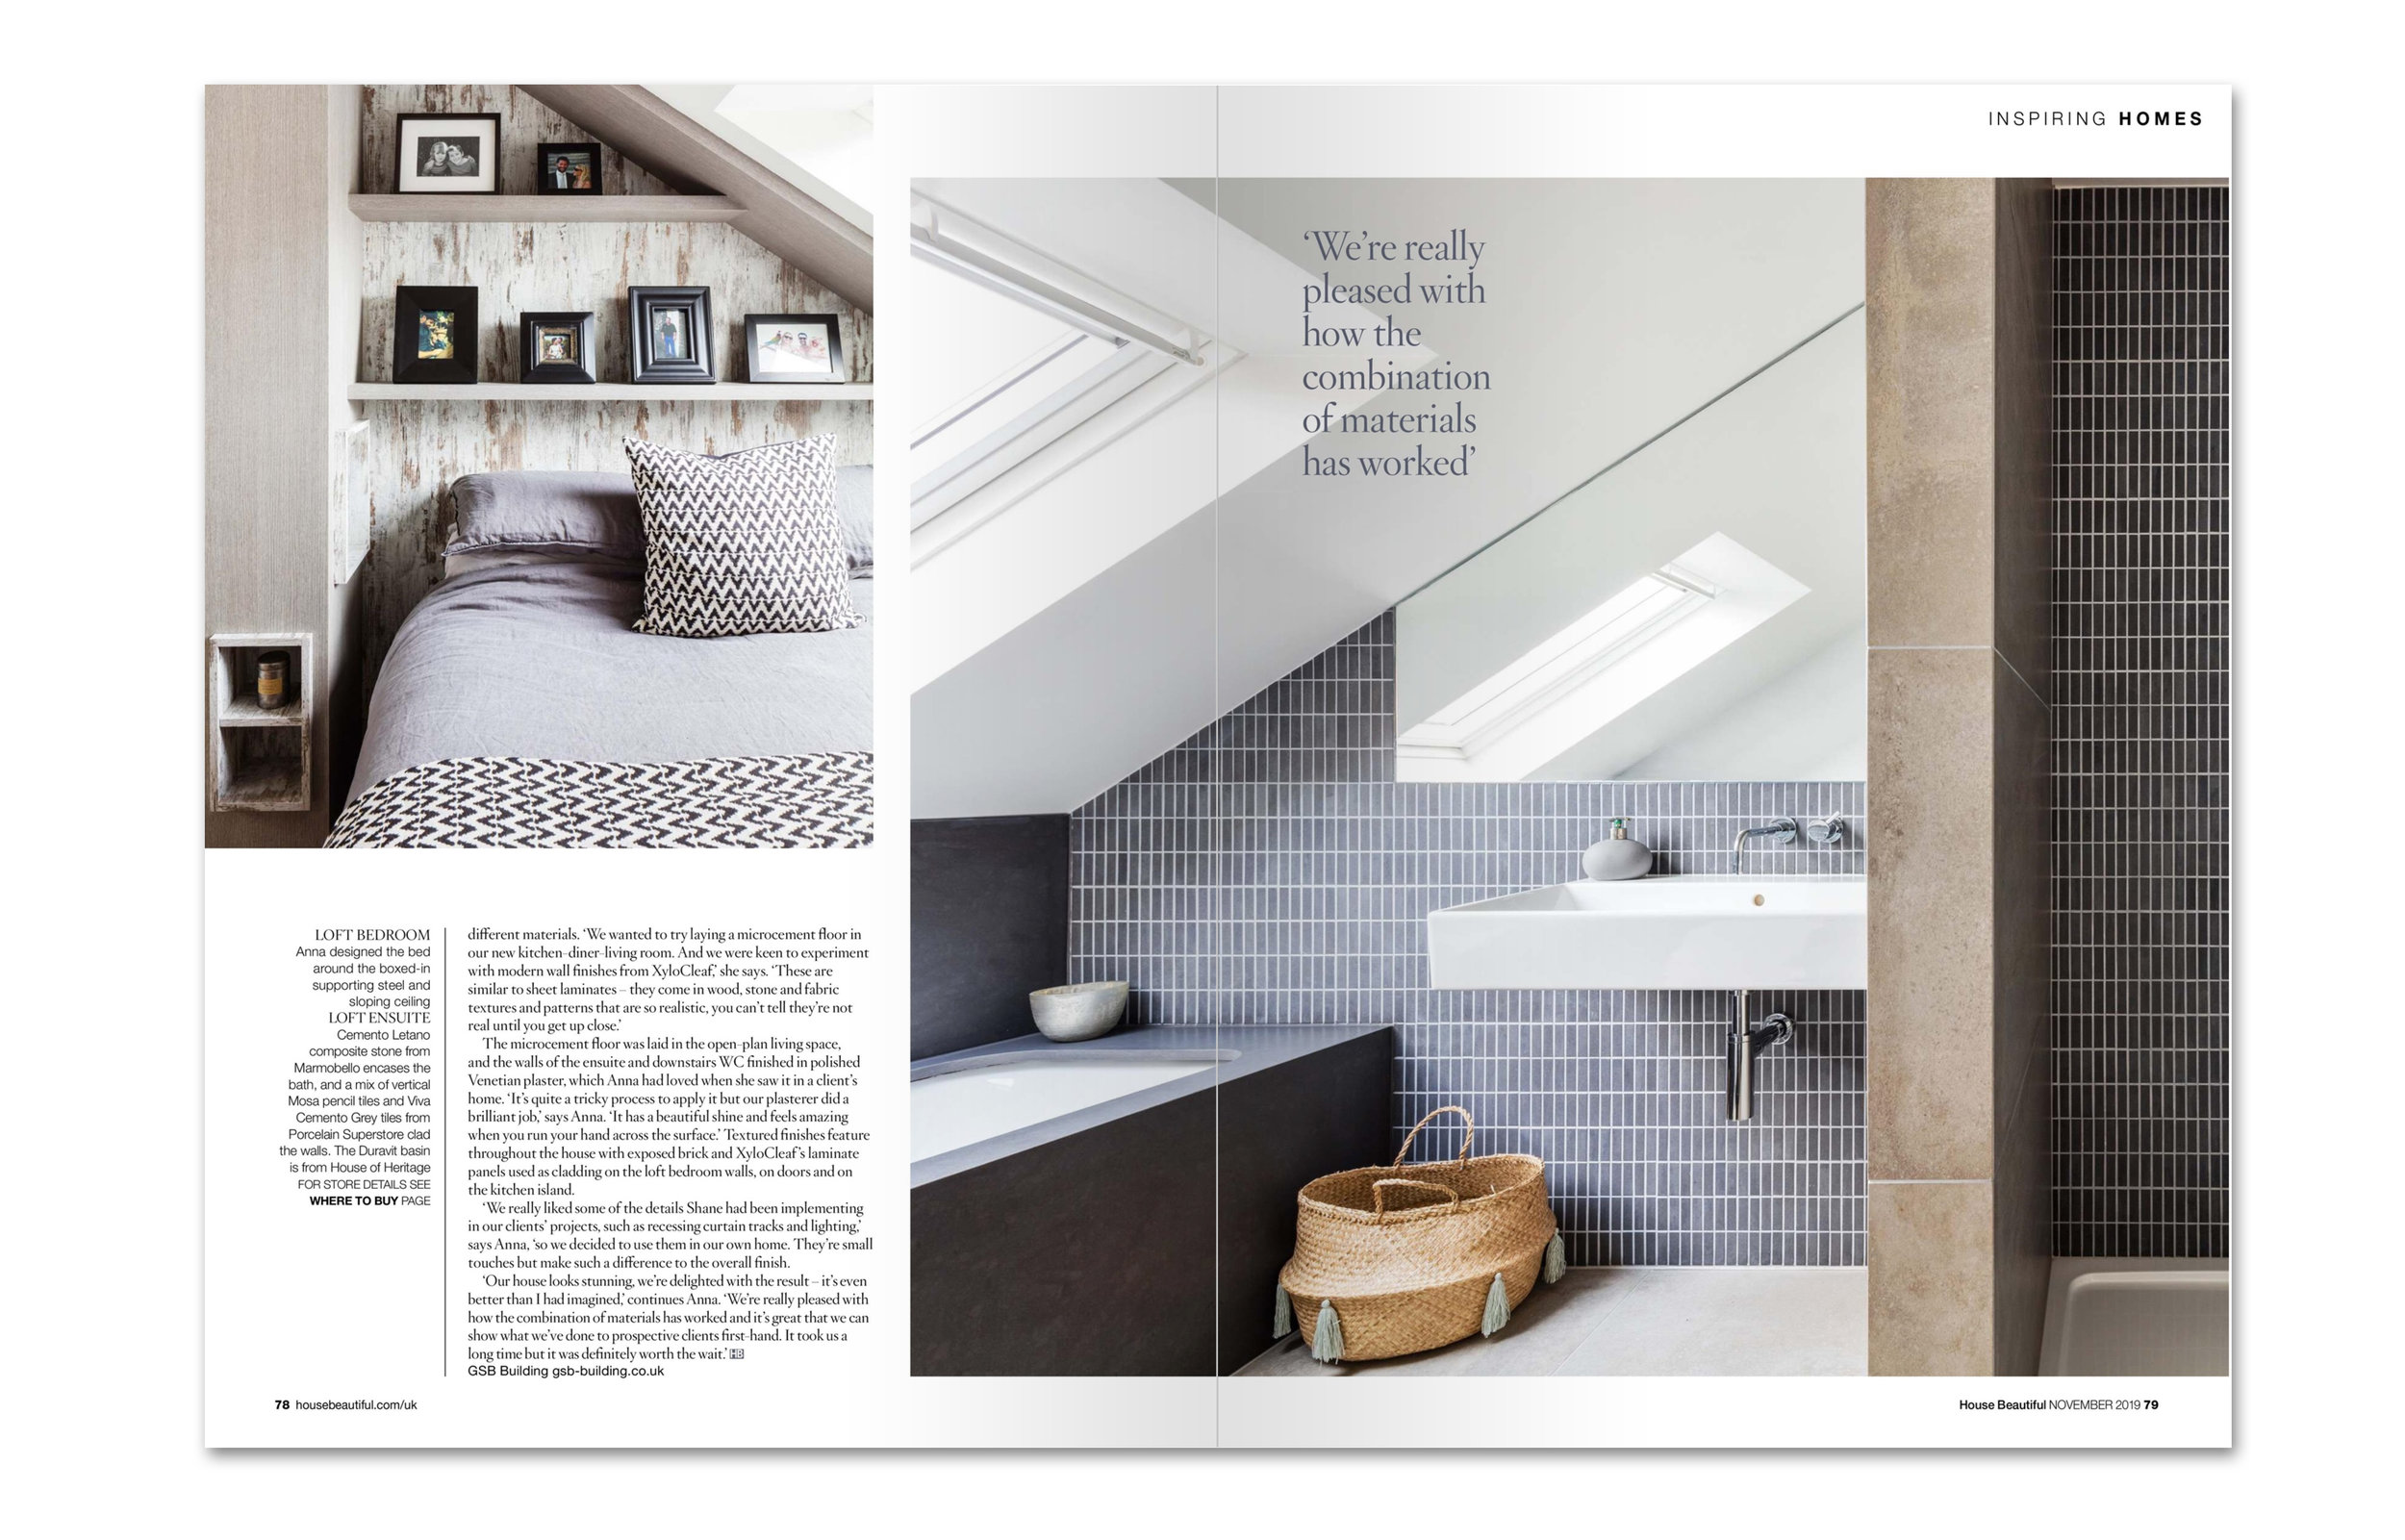 House Beautiful Nov 2019_02 Article Page 78-79.jpg